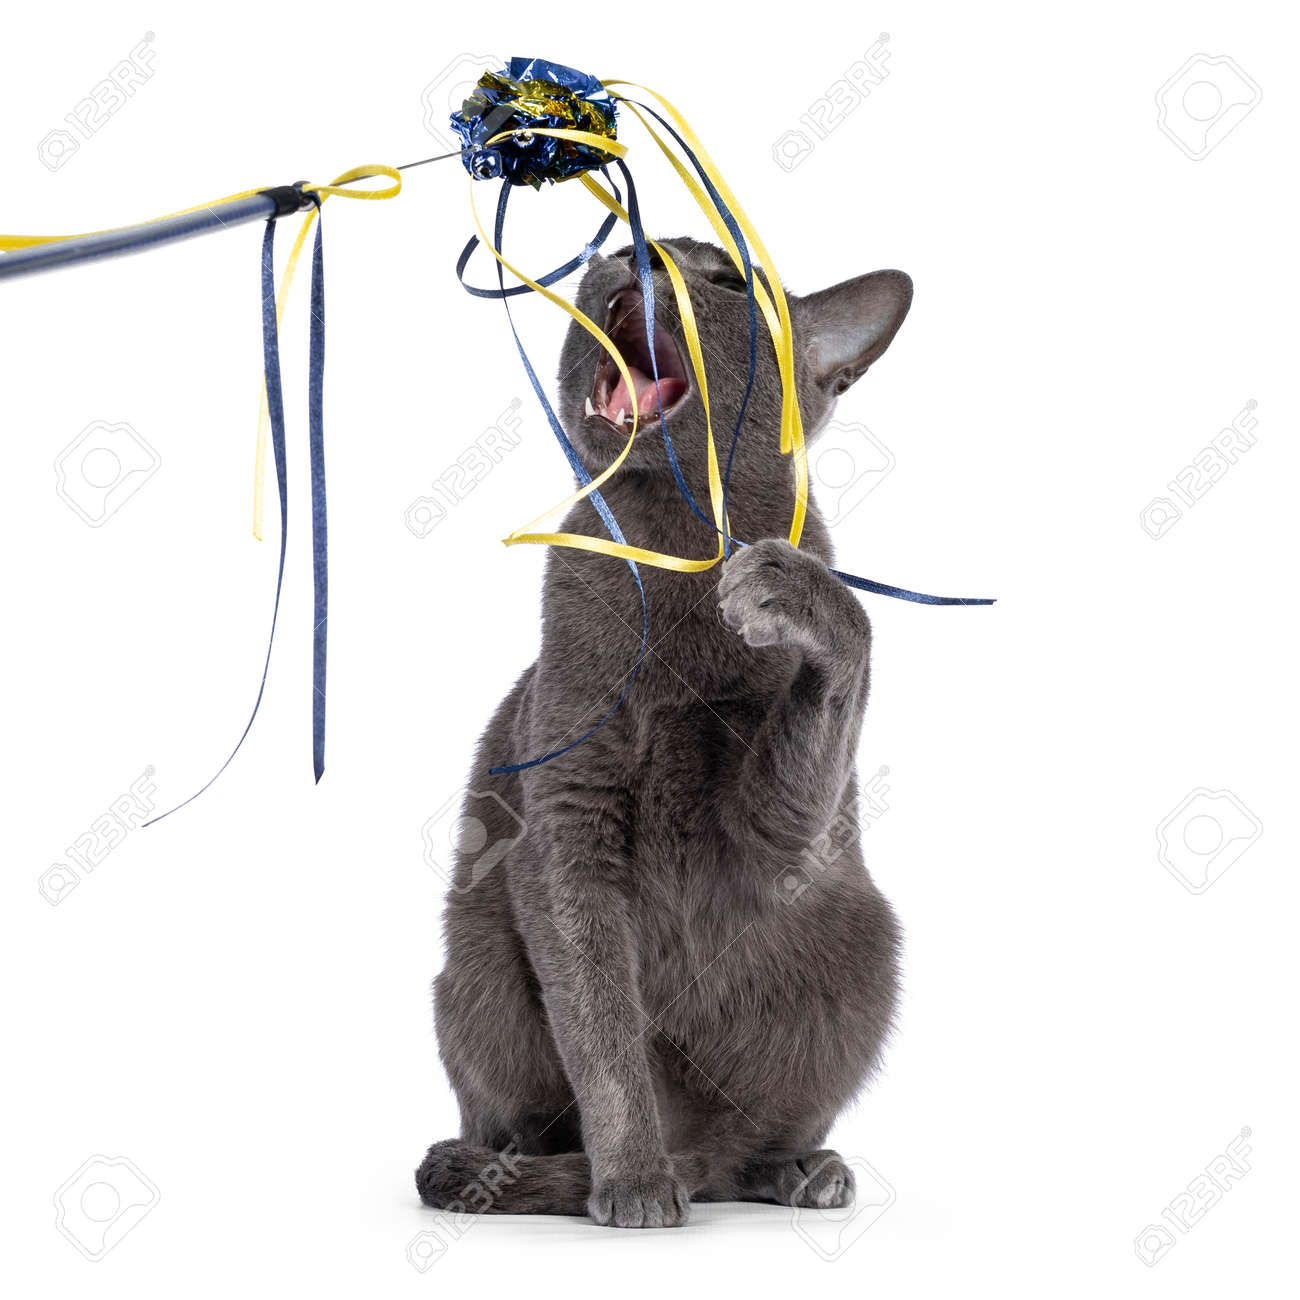 Young silver tipped Korat cat, sitting facing front. Playing and biting in cat toy. Isolated on a white background. - 173188850